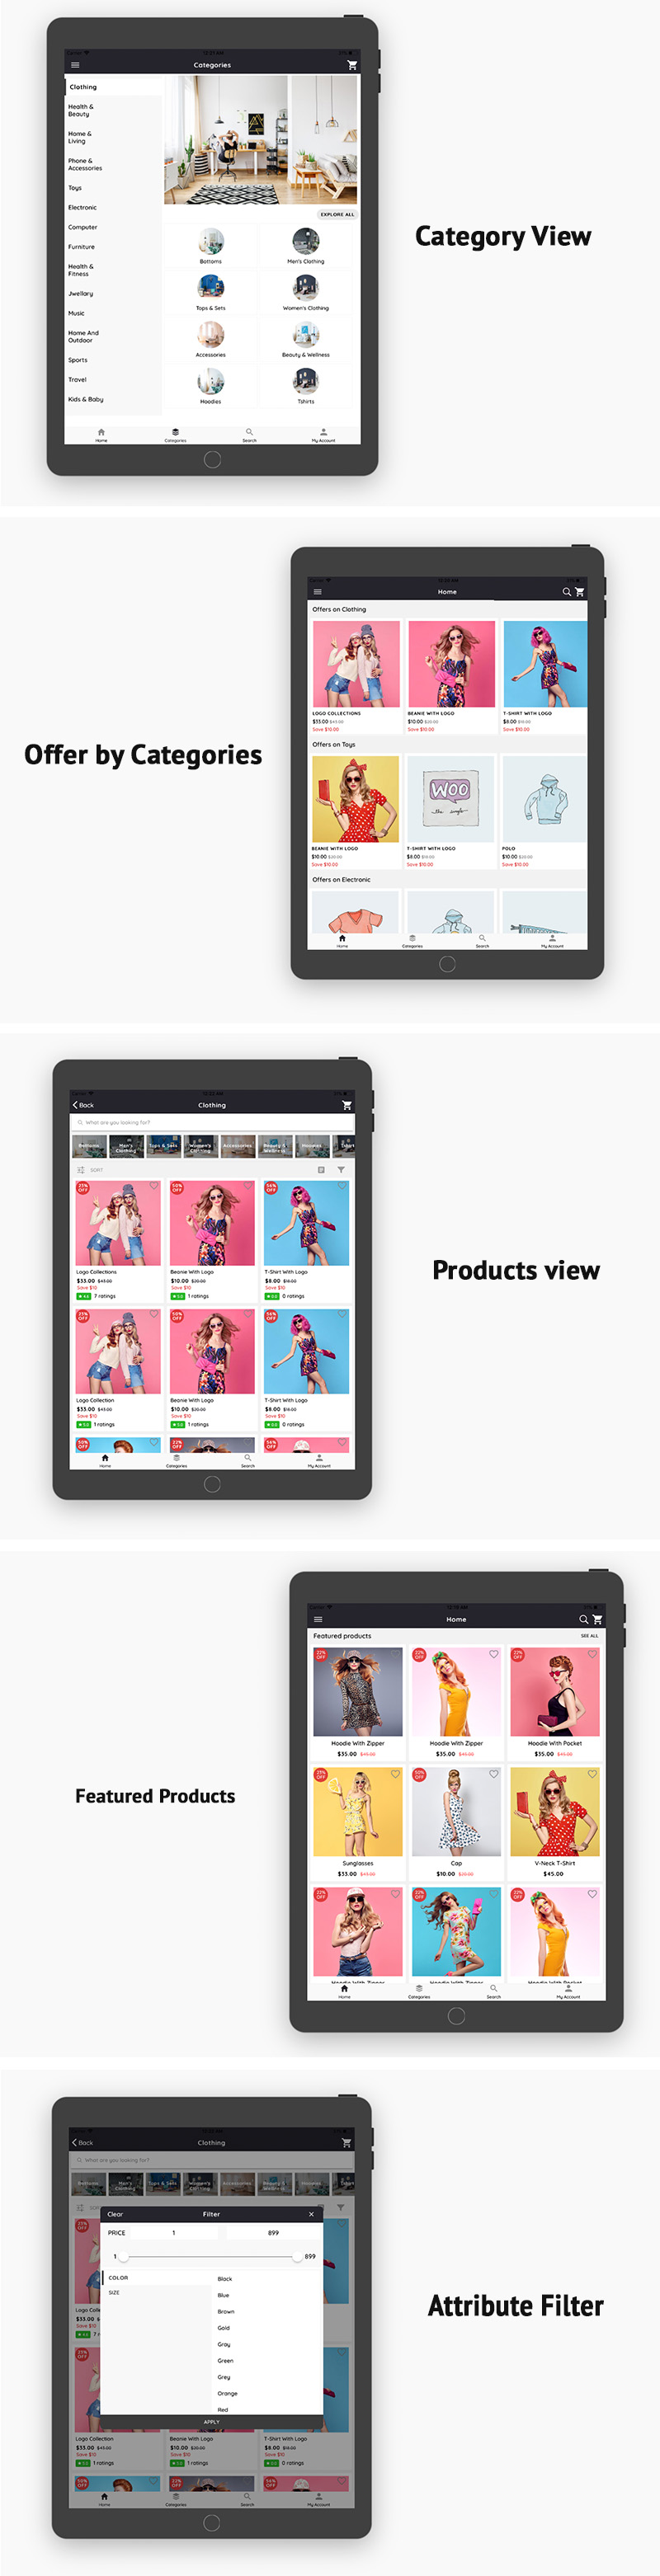 WooCommerce Mobile App ionic full application Lifestyle theme - 9